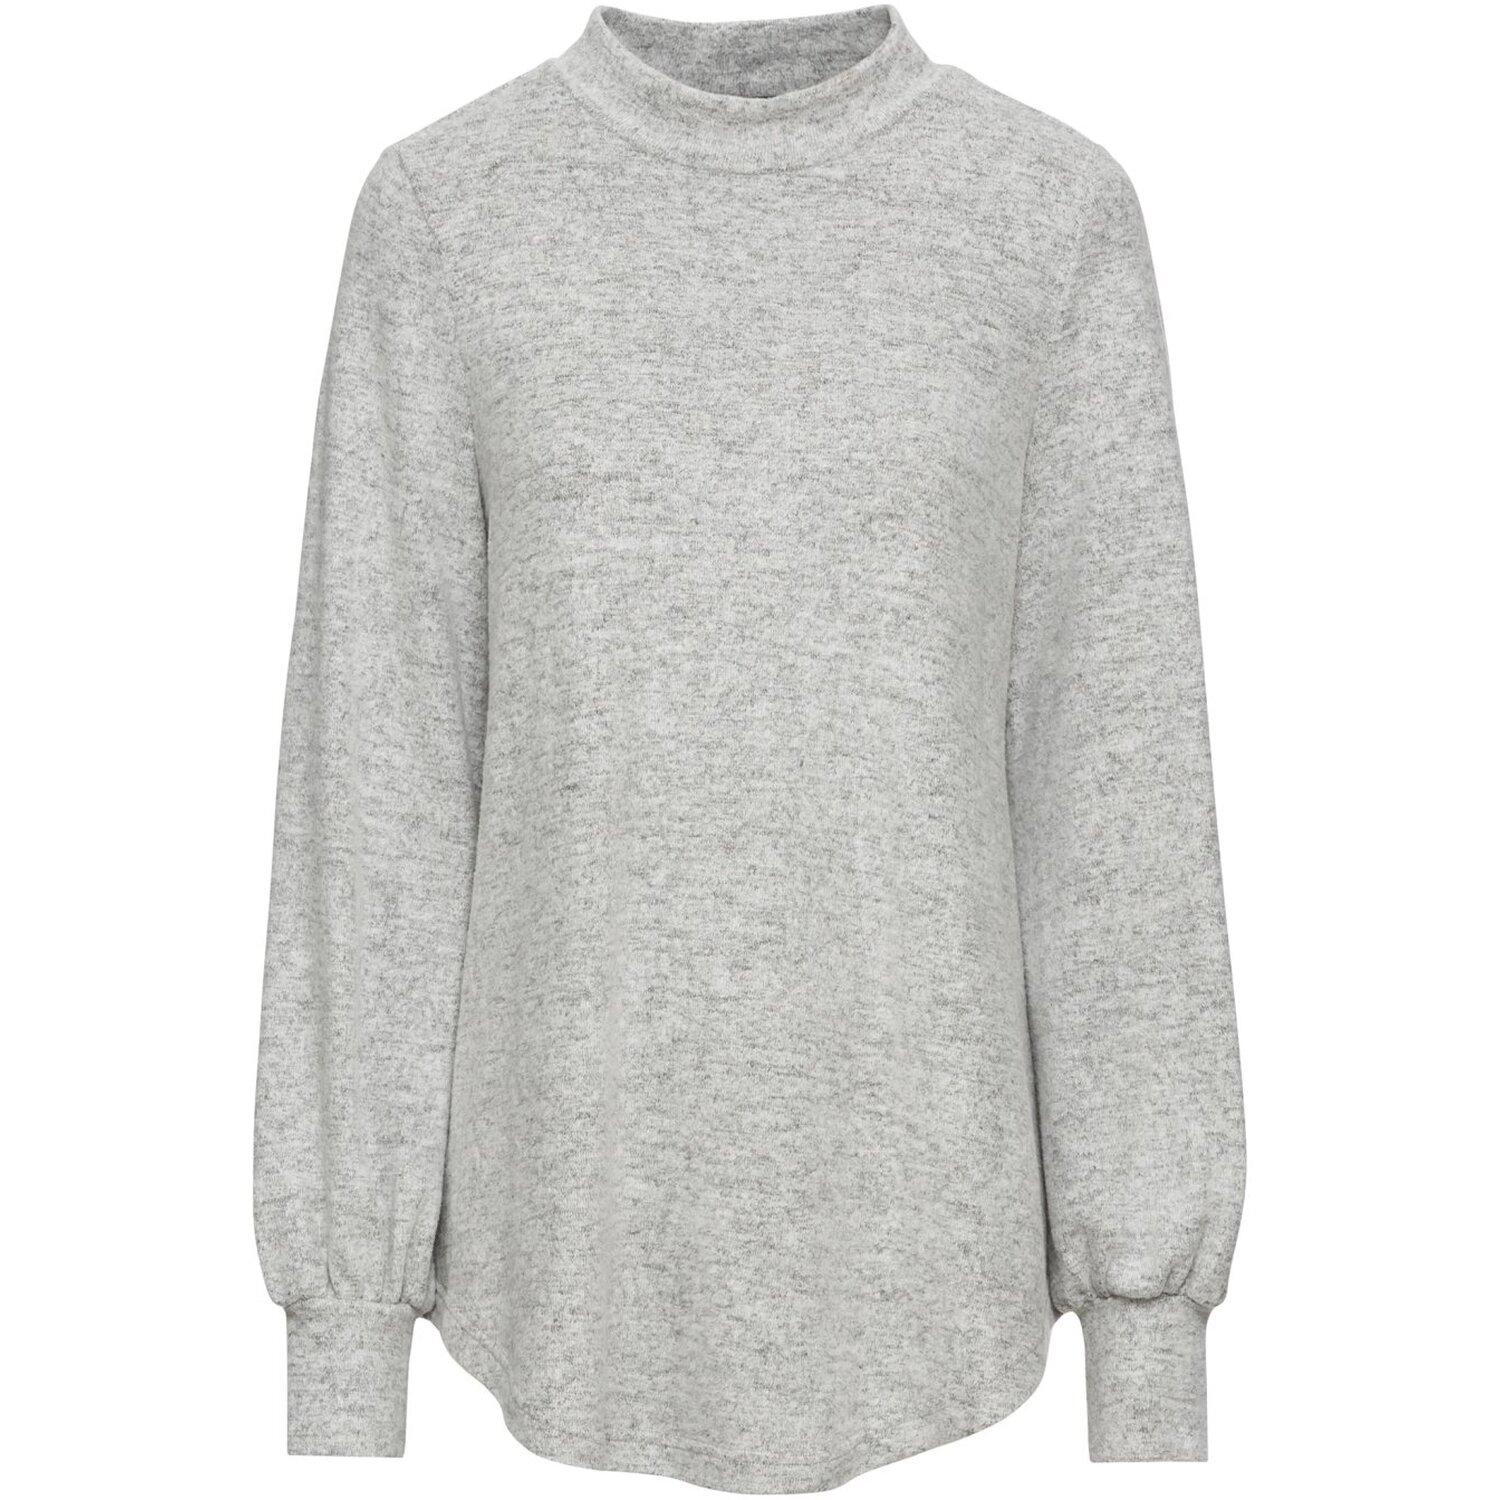 Damen Kuscheliges Sweatshirt, 317071 in Hellgrau Meliert